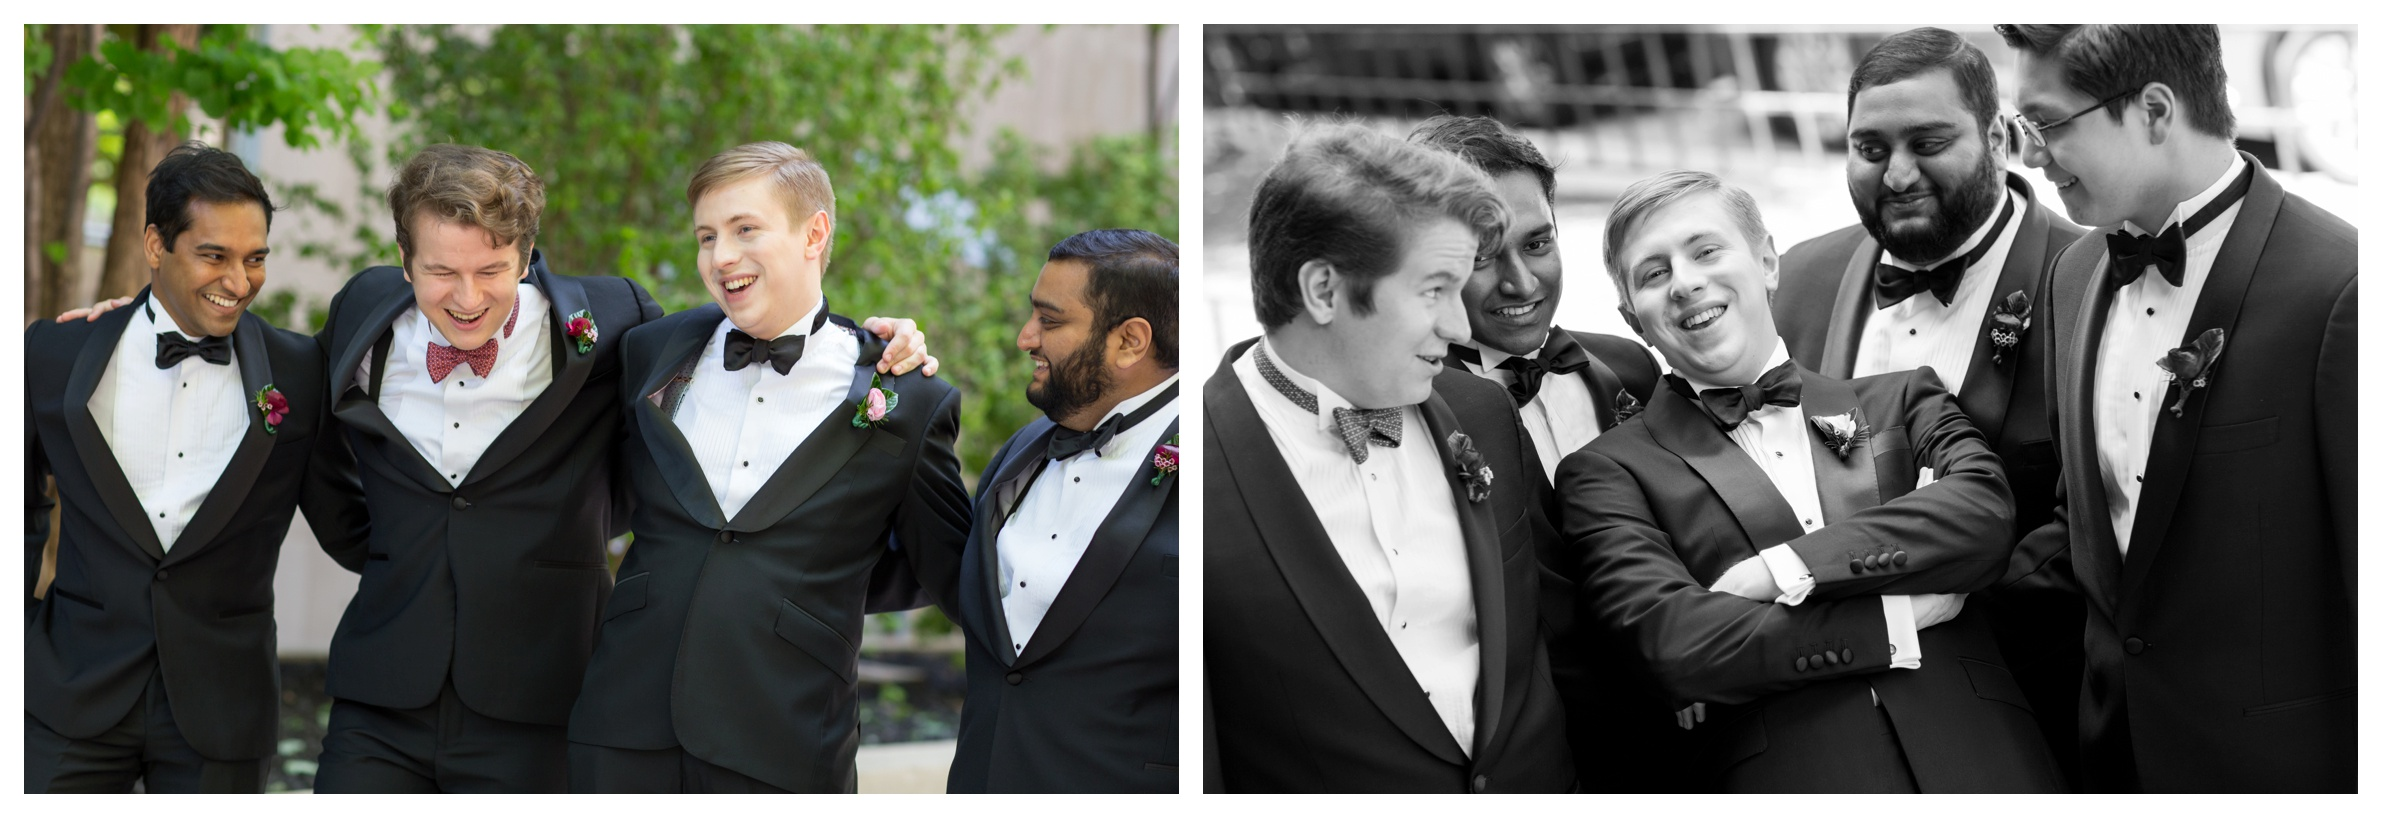 groomsmen-chicago